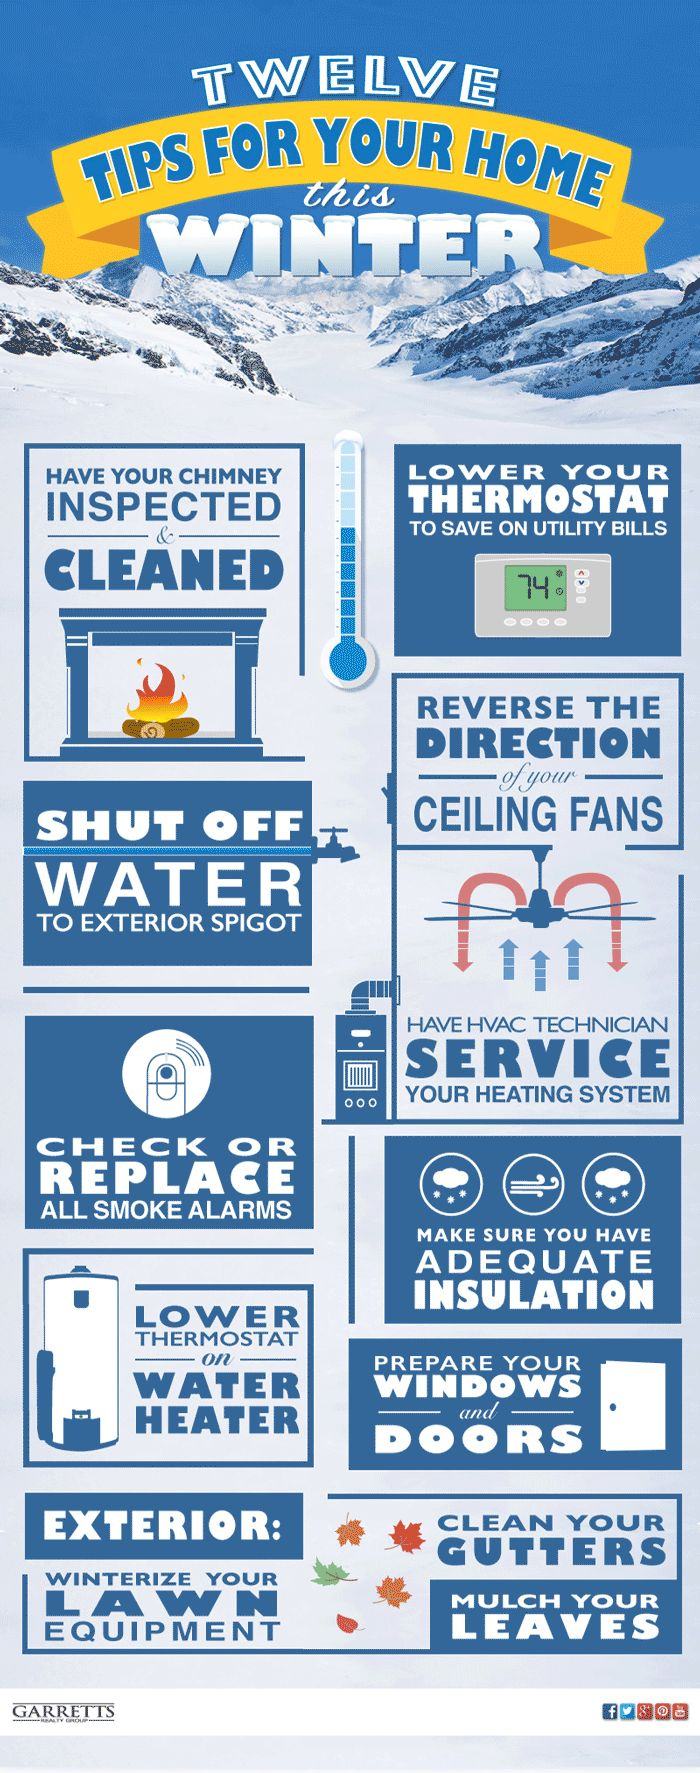 Easy to follow tips to get your Home ready for Winter.